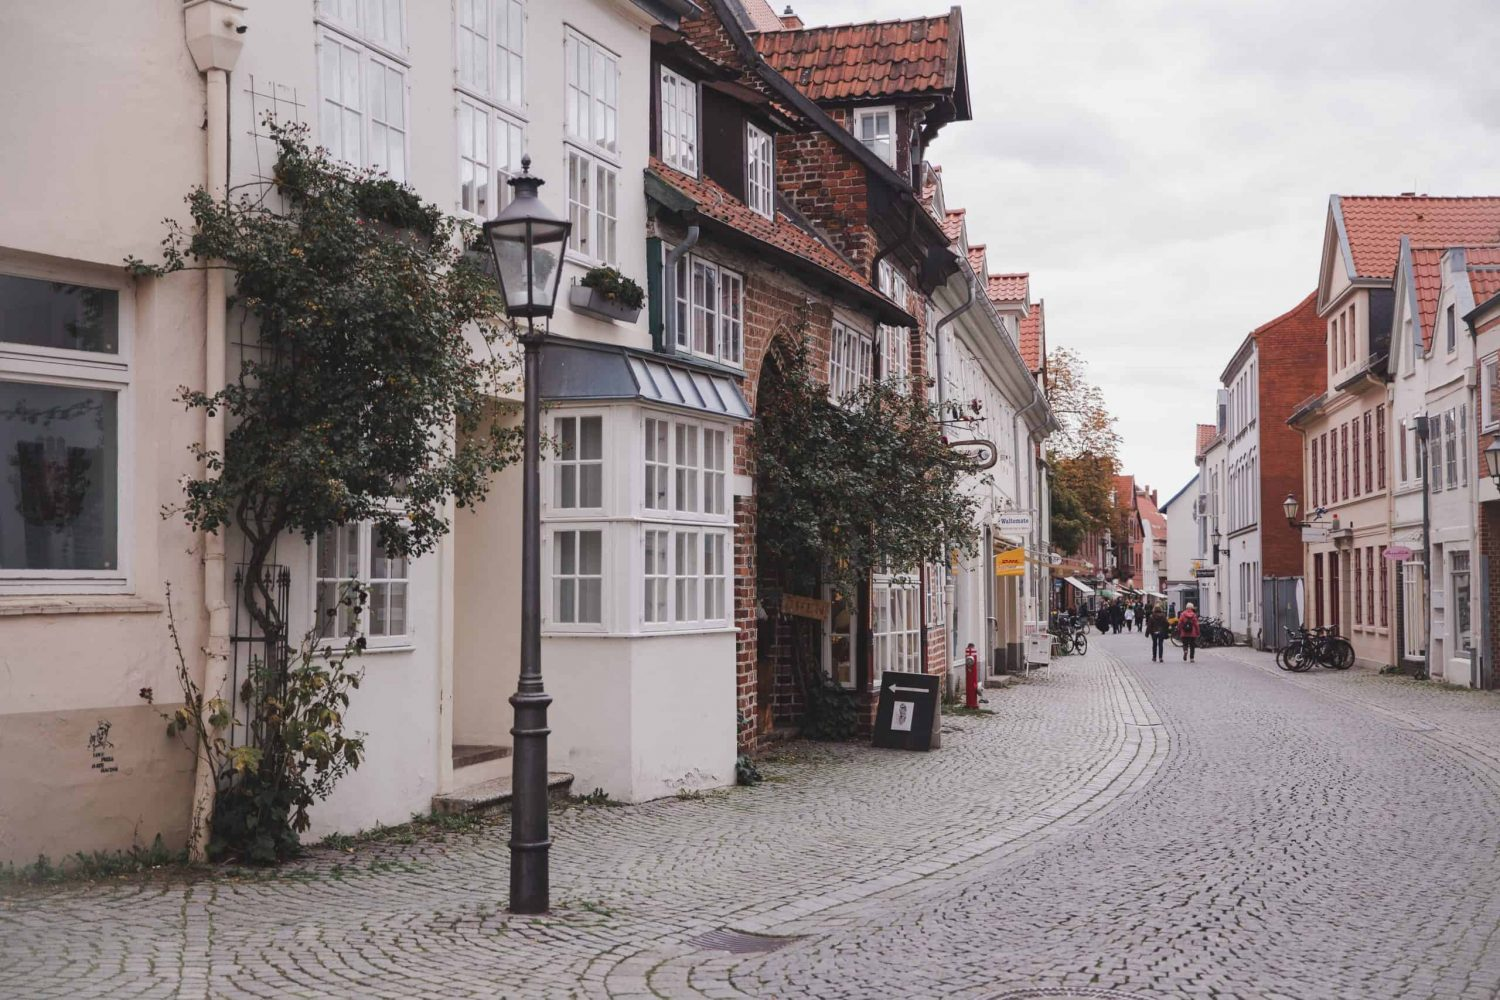 Cobblestone street in Lüneburg lined with pretty buildings.